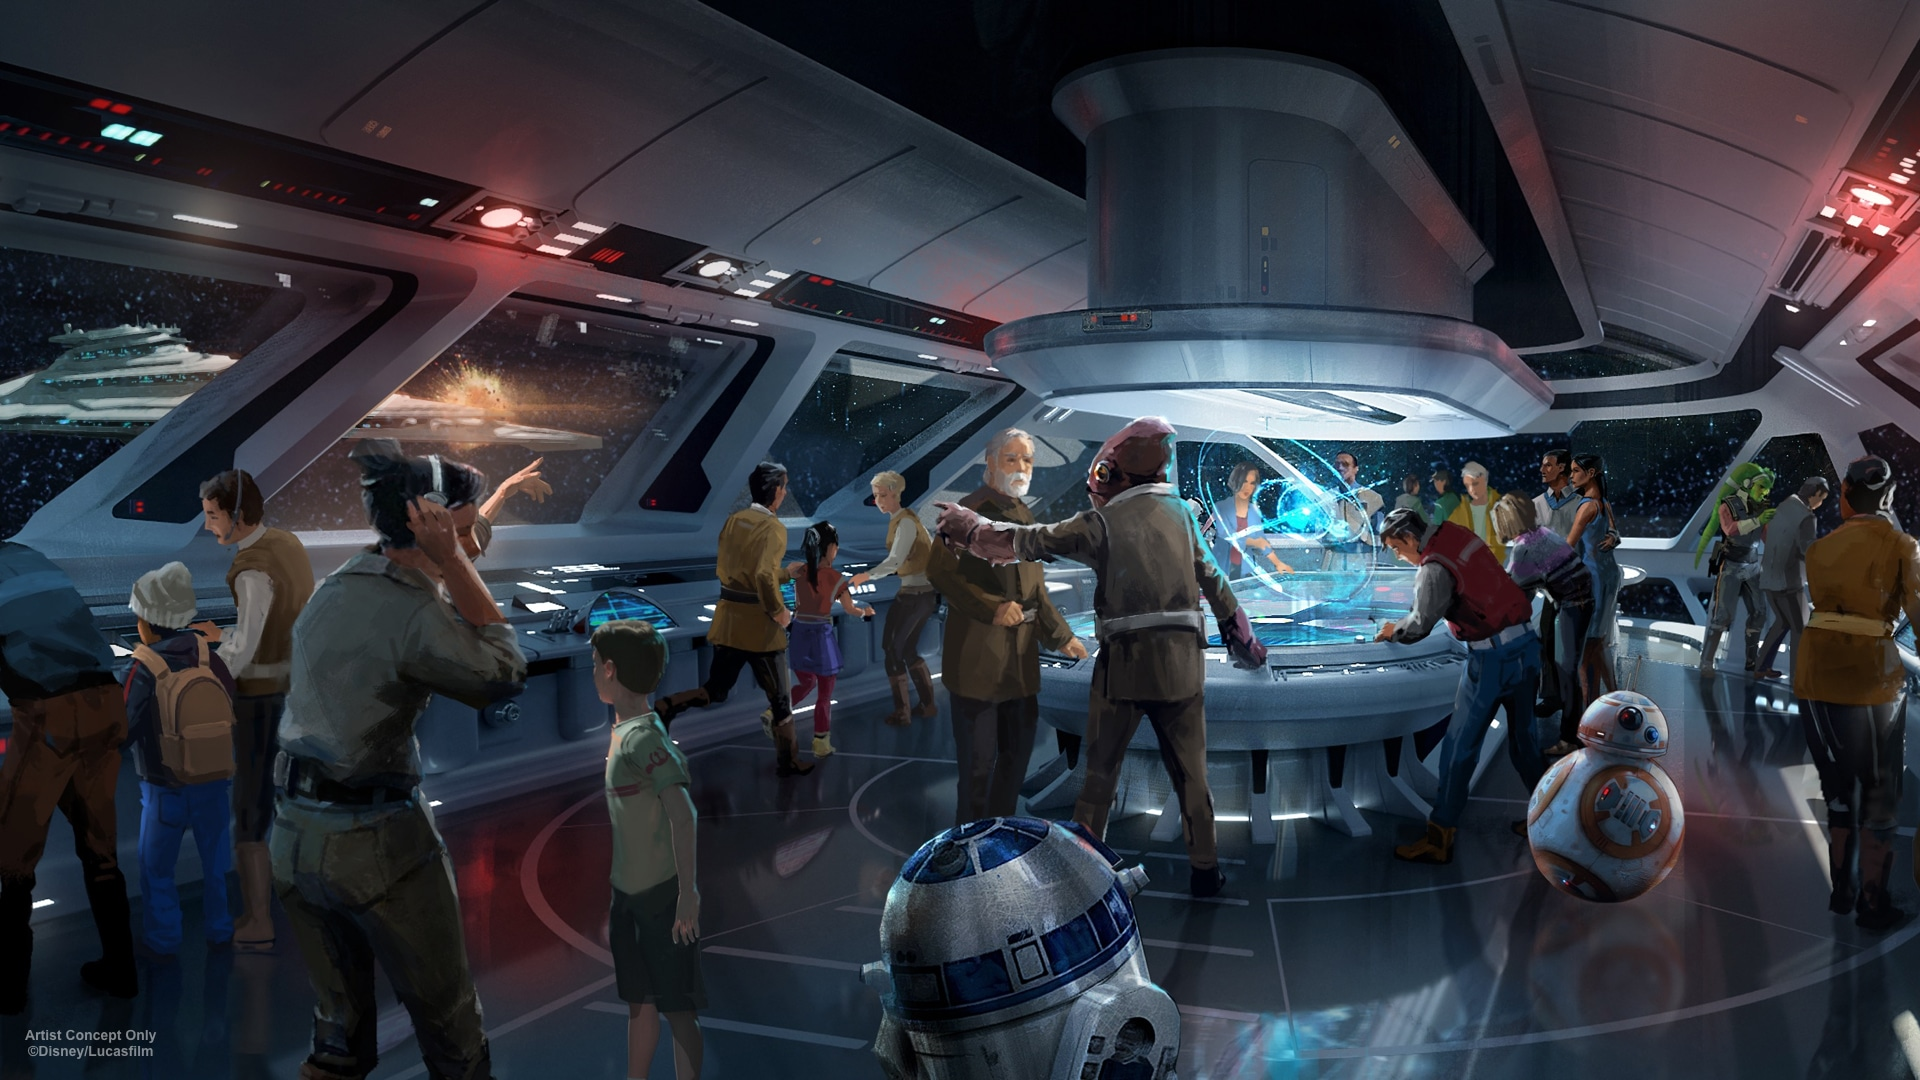 Disney Star Wars hotel with complete immersive experiences